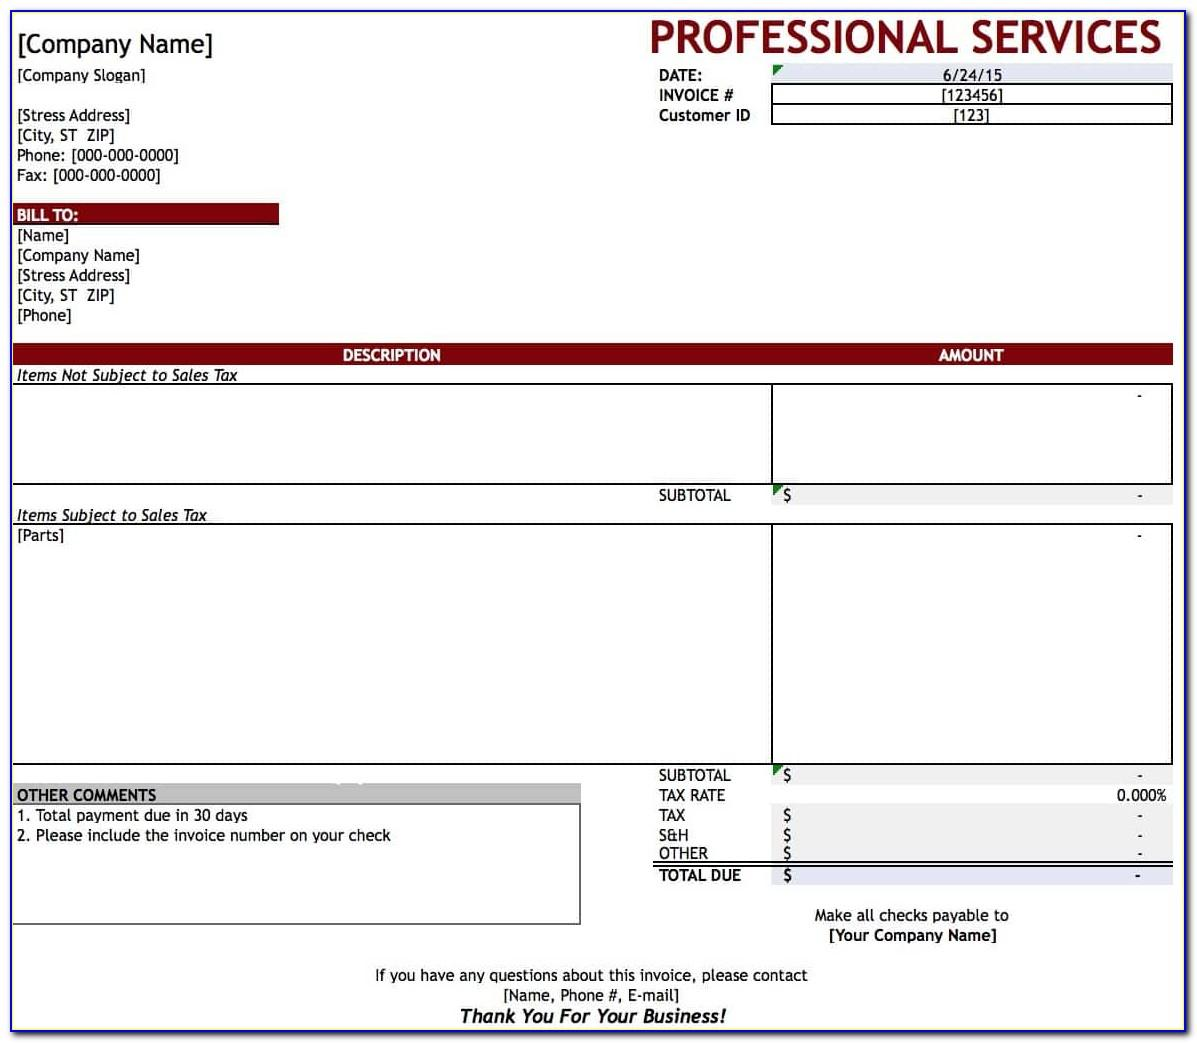 Professional Service Invoice Template Excel